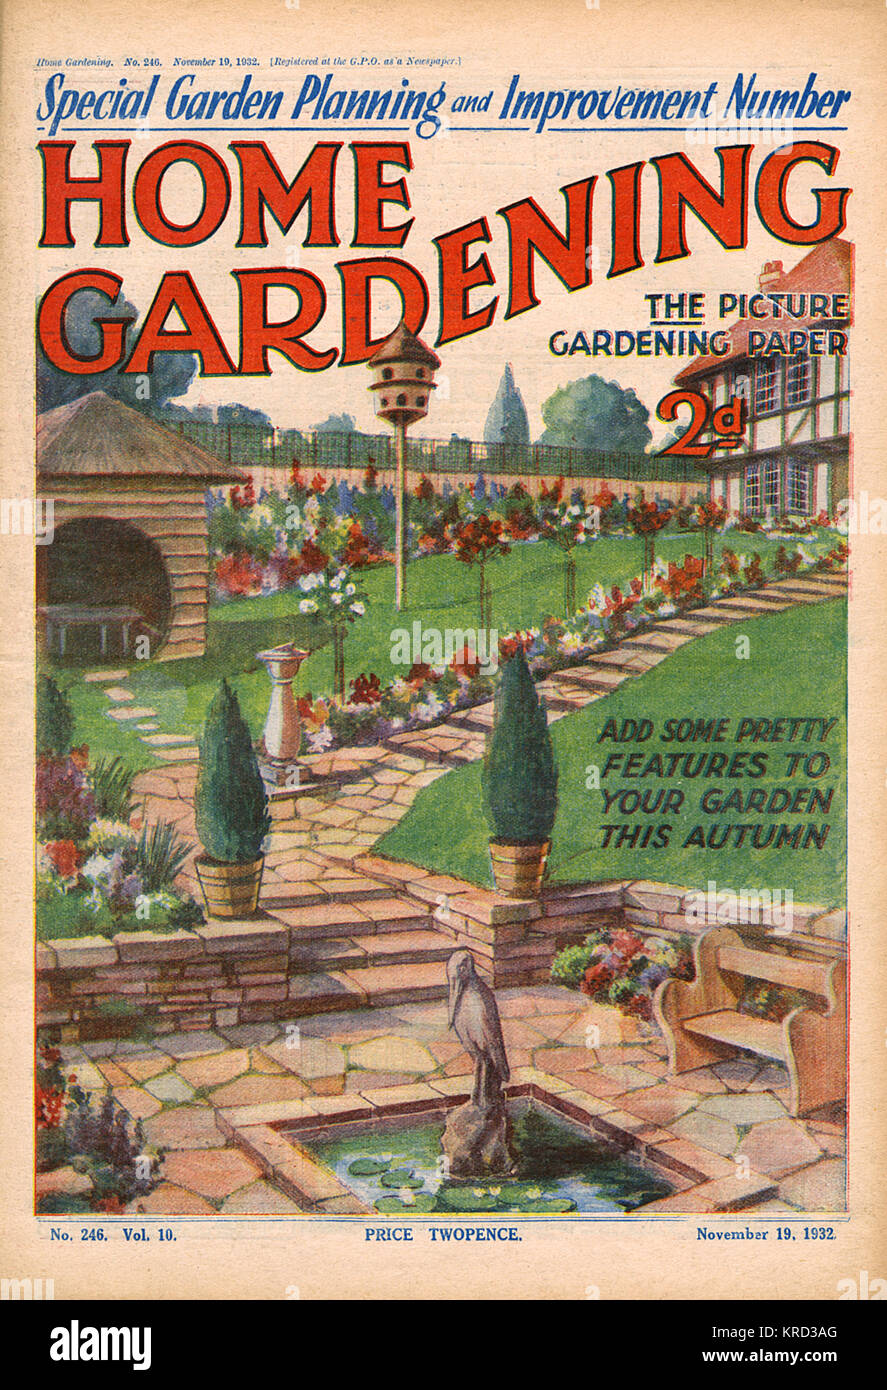 Front cover of Home Gardening magazine with an illustration suggesting 'pretty features to add your garden this - Stock Image